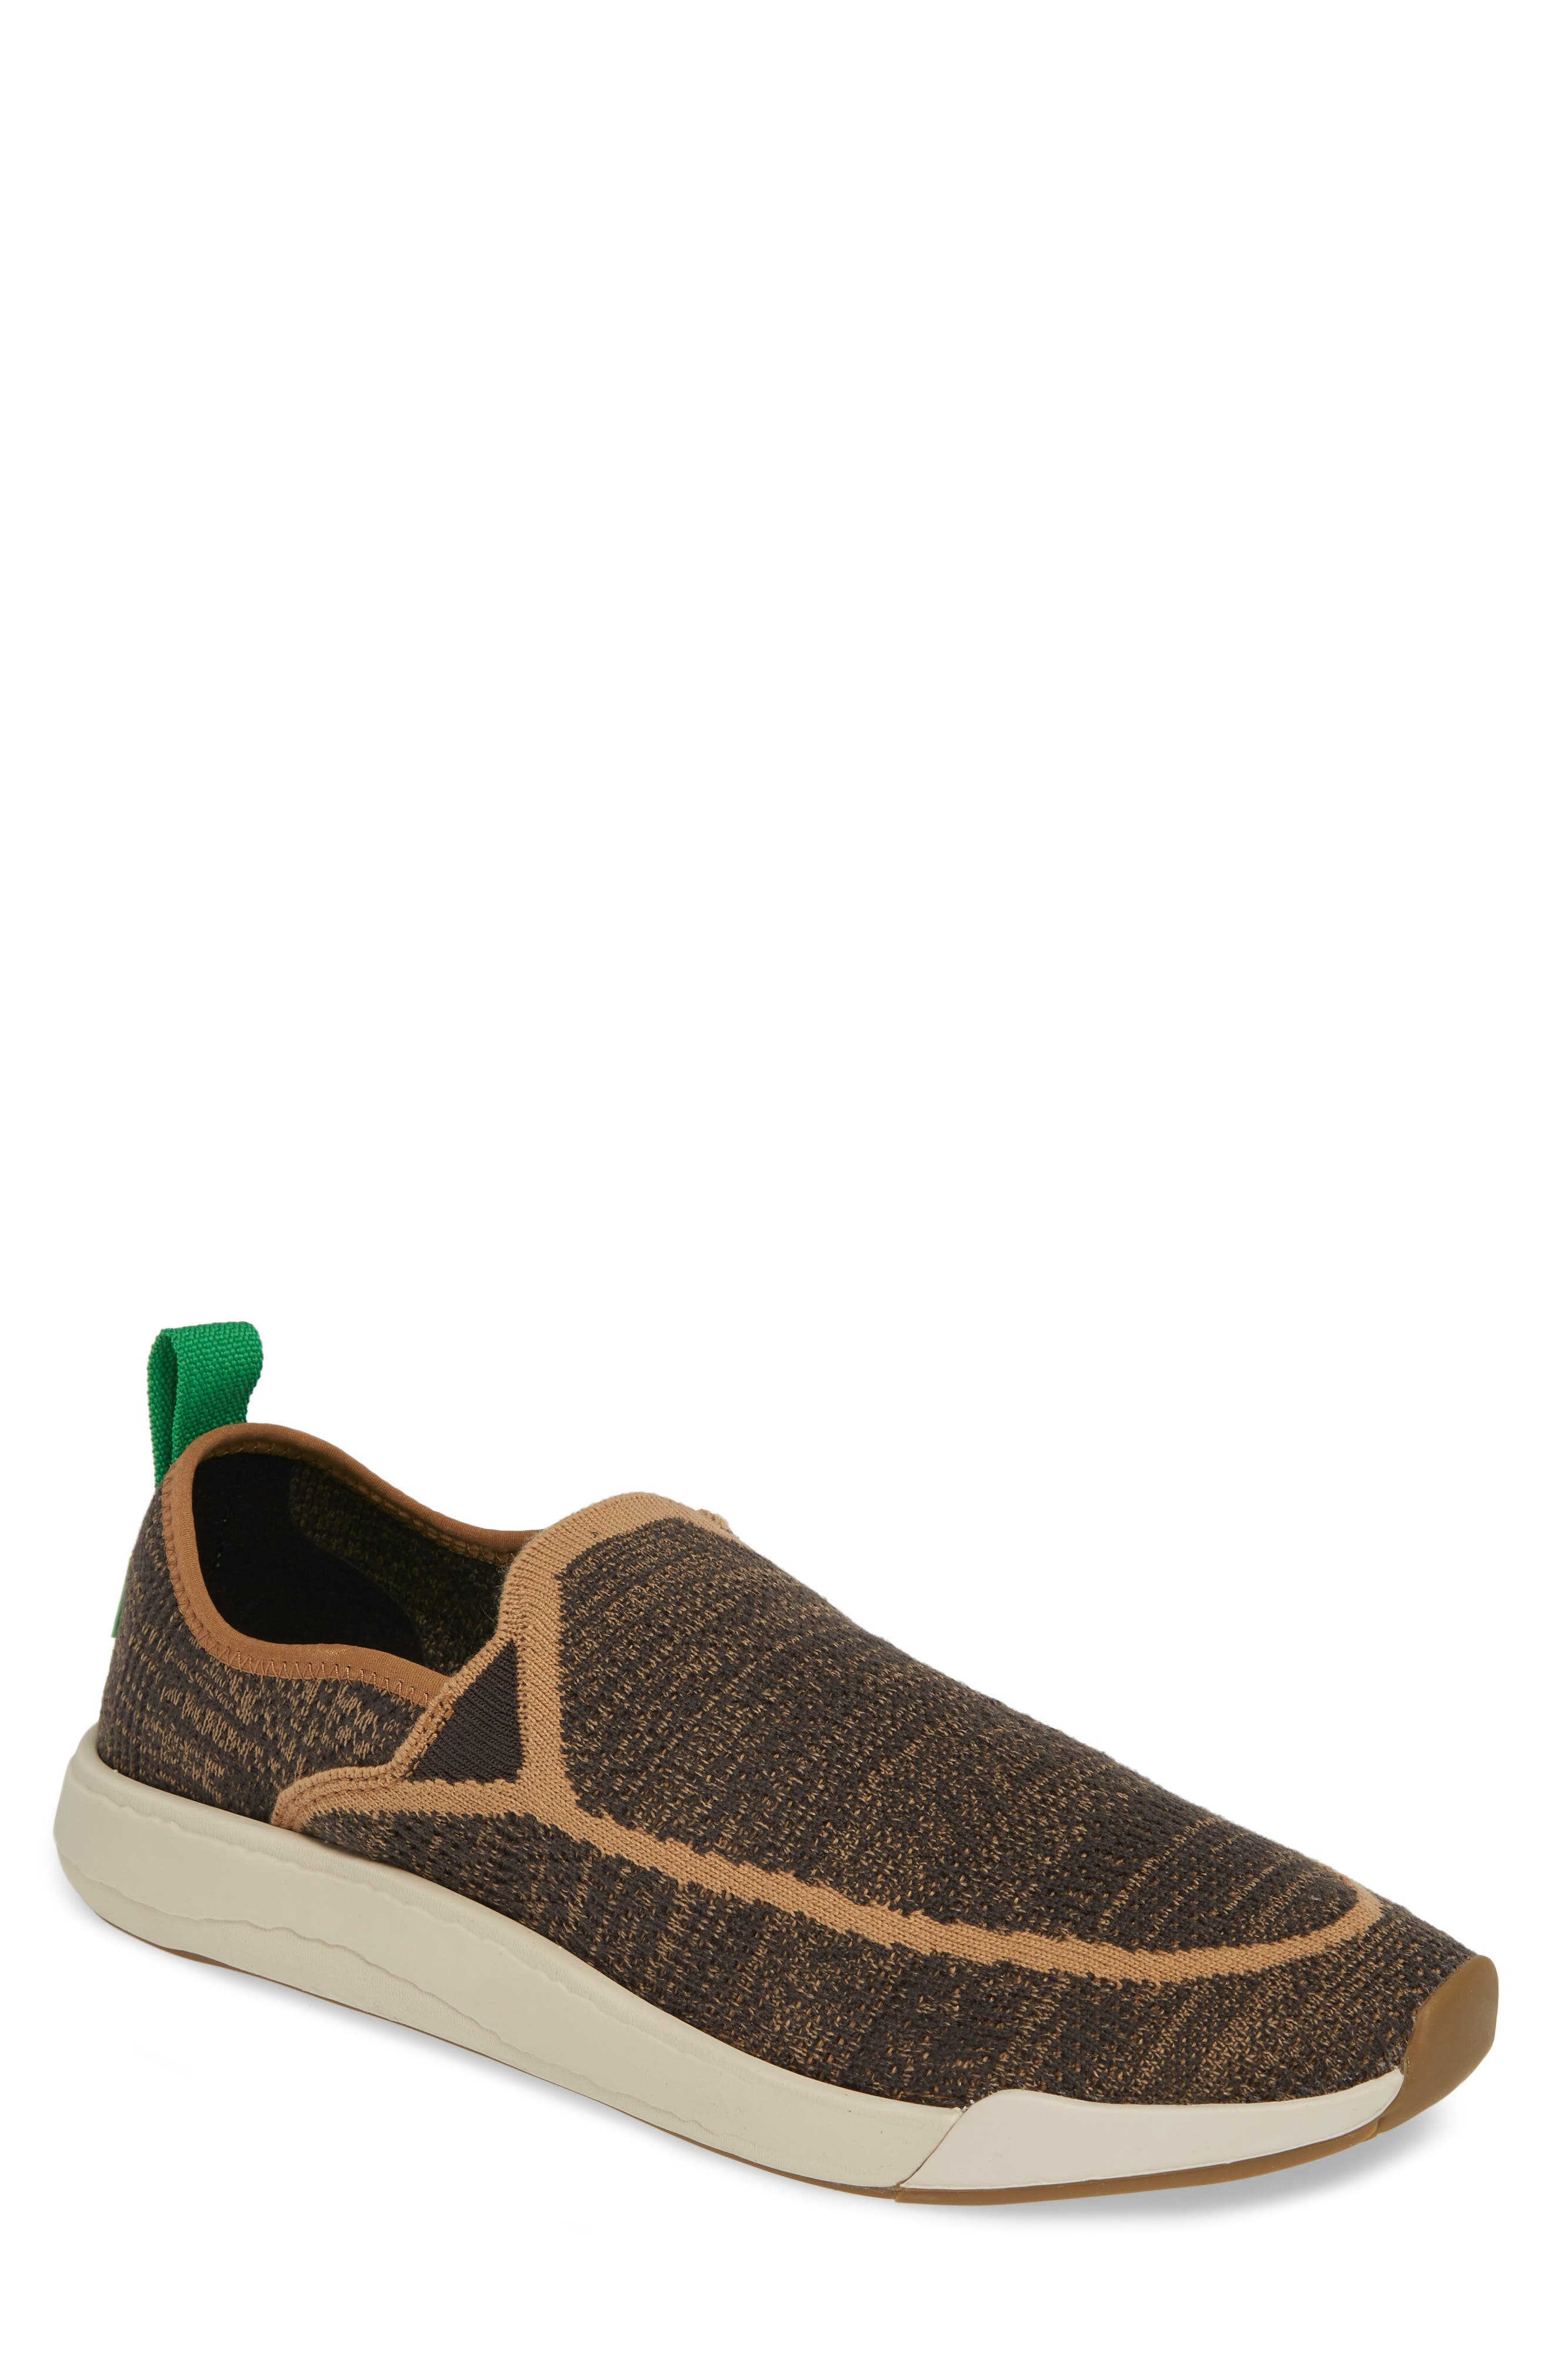 SANUK,                             Chiba Quest Knit Slip-On Sneaker,                             Main thumbnail 1, color,                             BROWN NATURAL